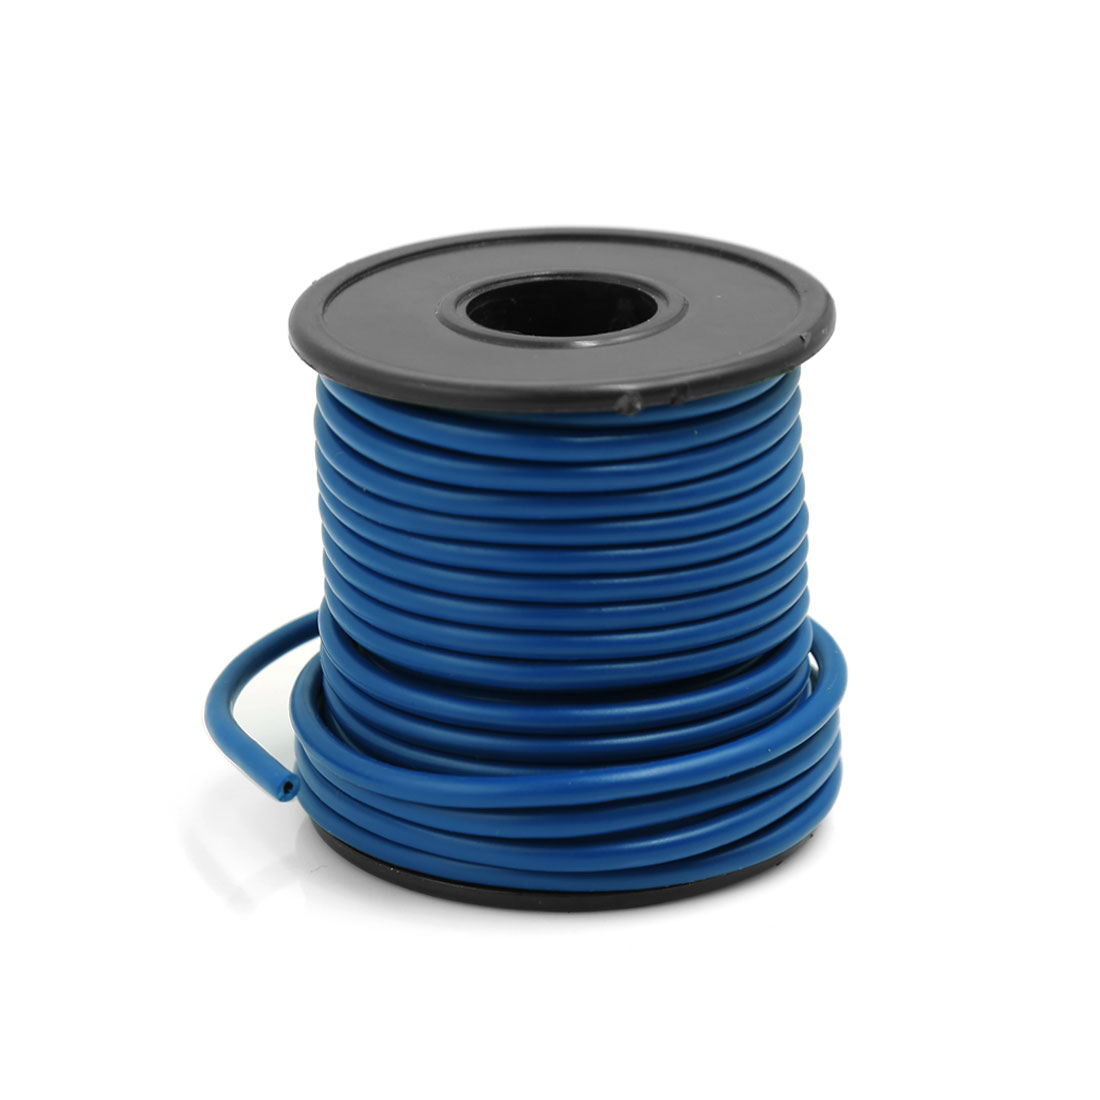 10M Copper PVC Insulated Single Core Control Wire Cable Blue for Car Audio Stereo